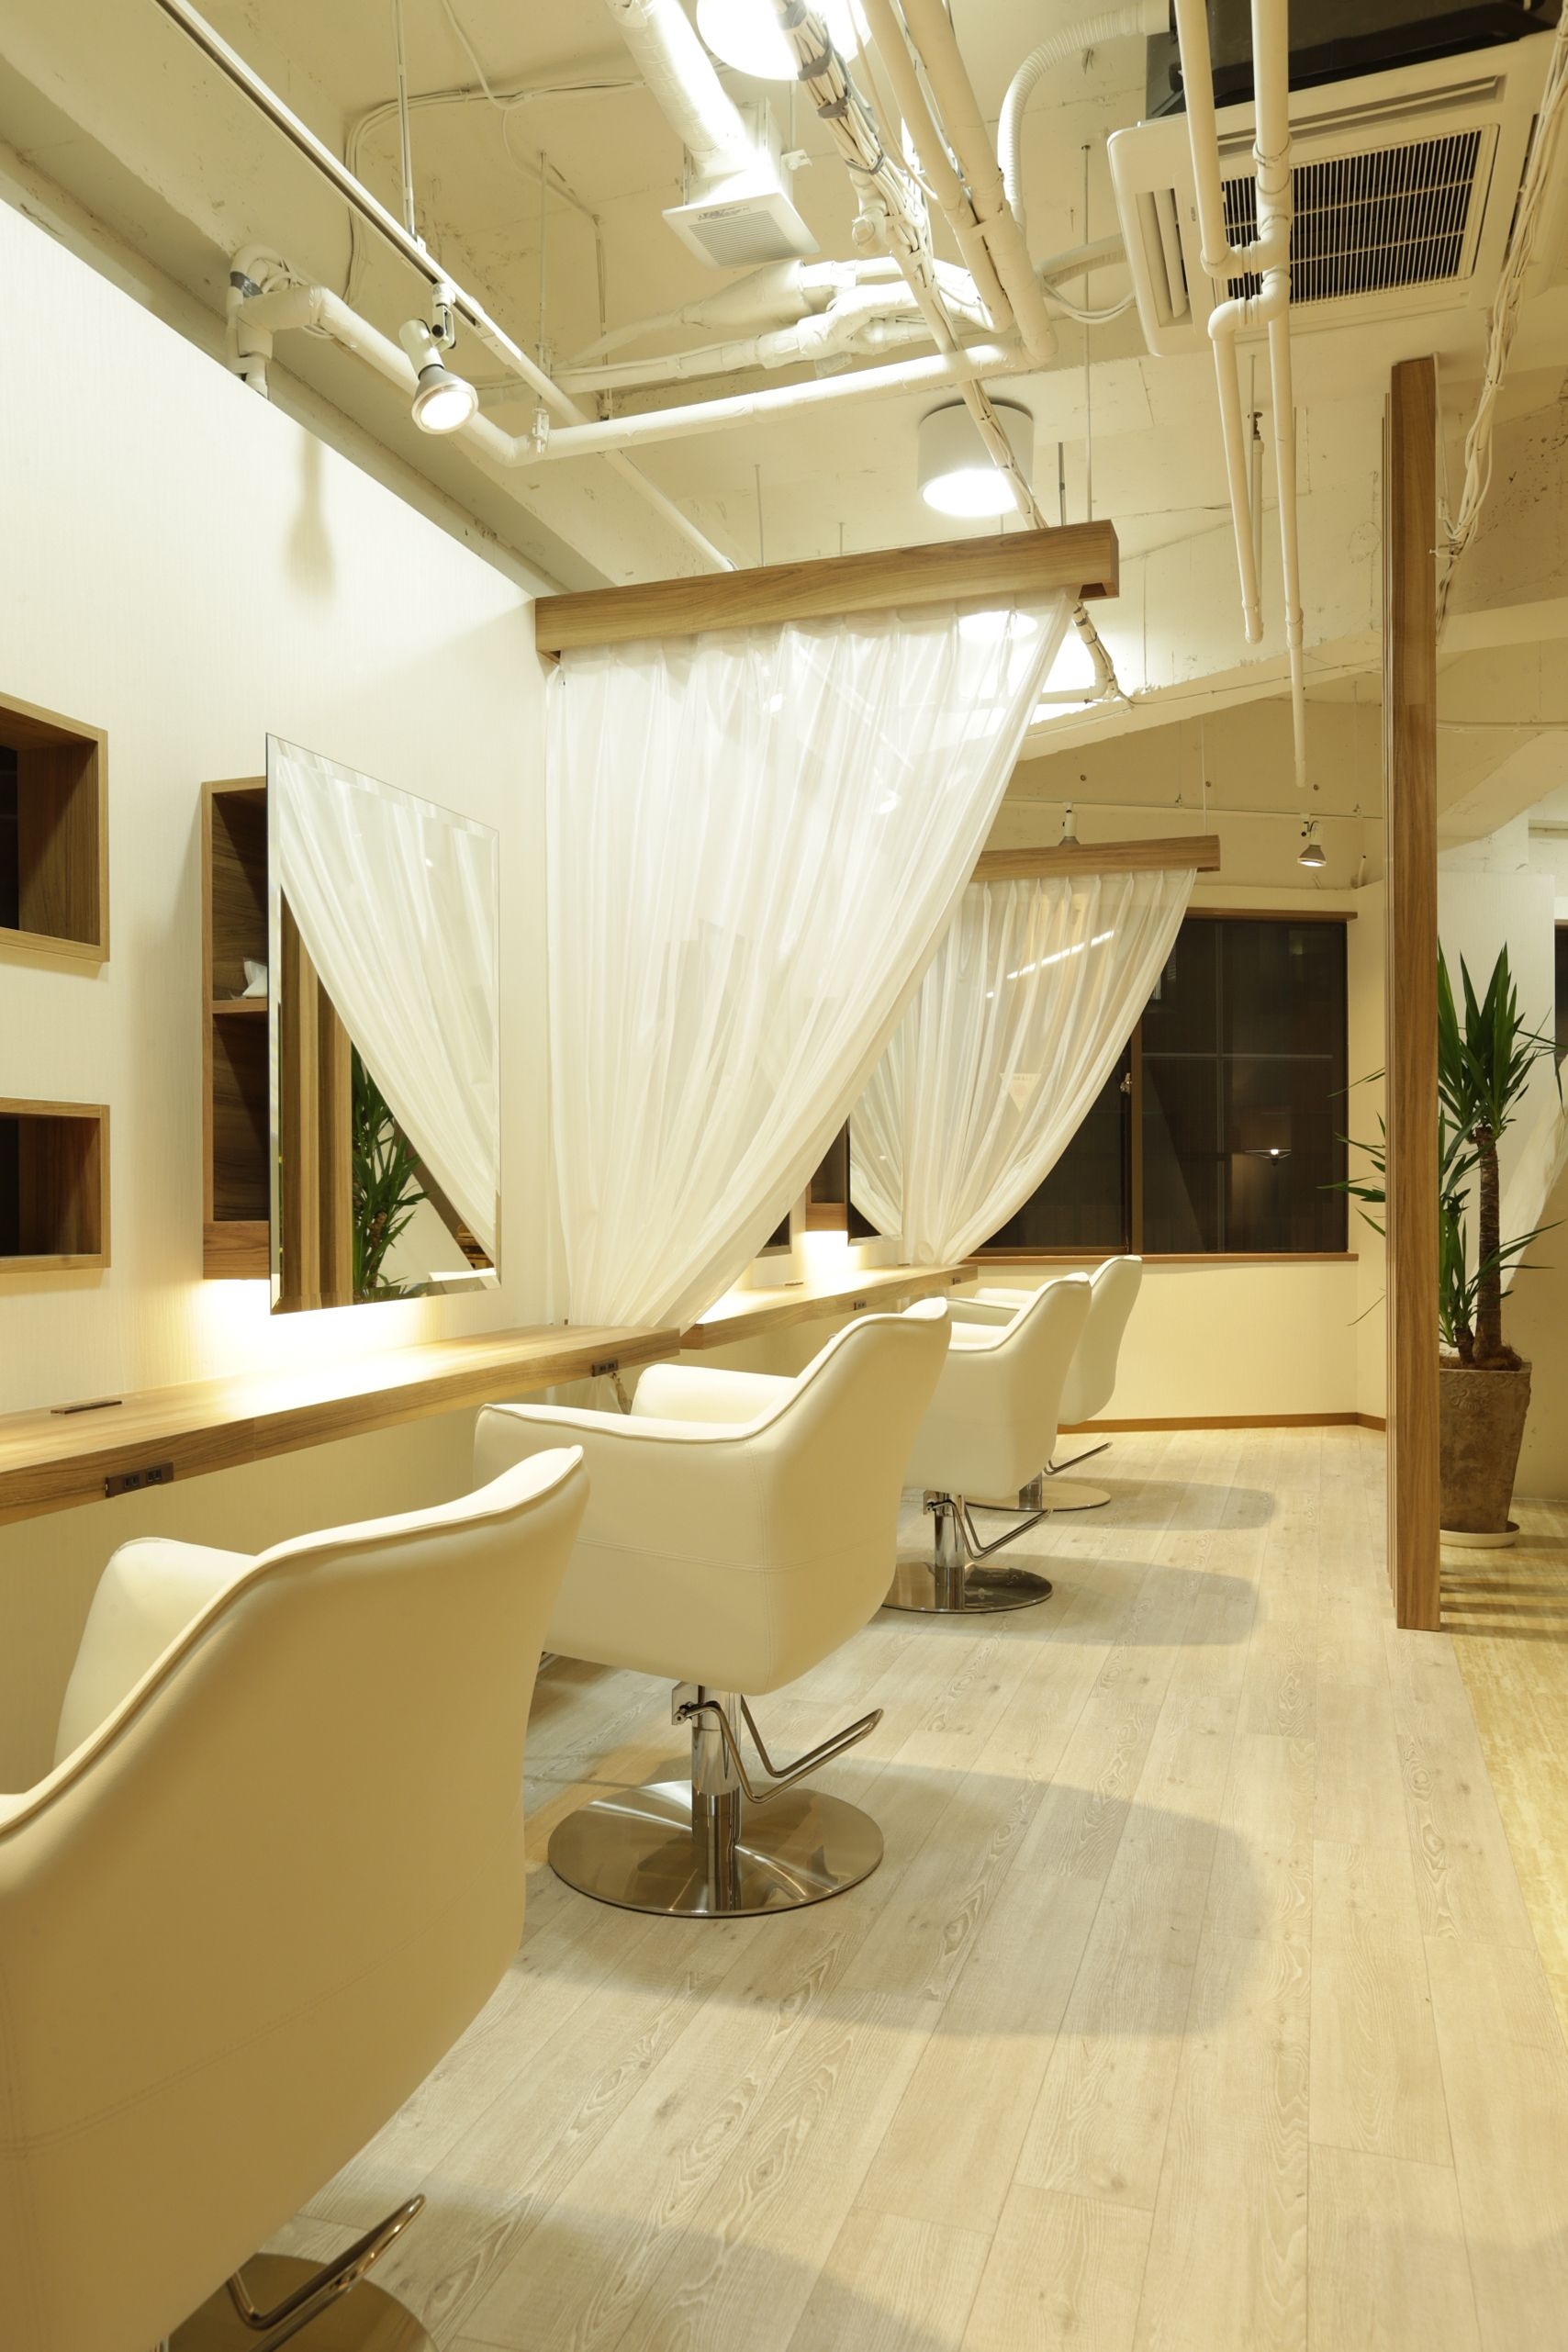 Beauty salon interior design ideas | + chairs + mirrors + space + ...